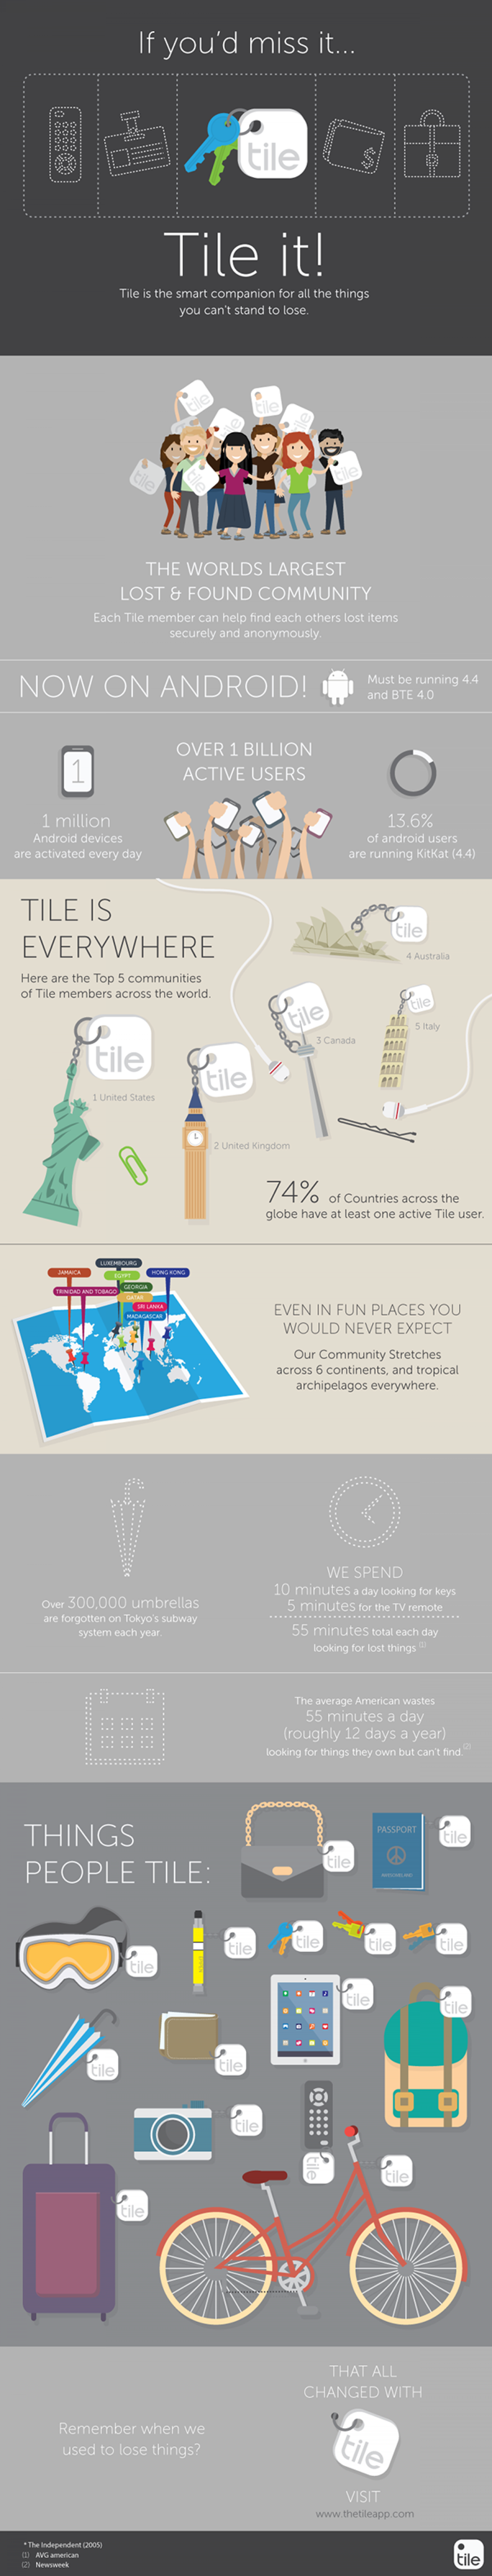 TILE IT! Infographic